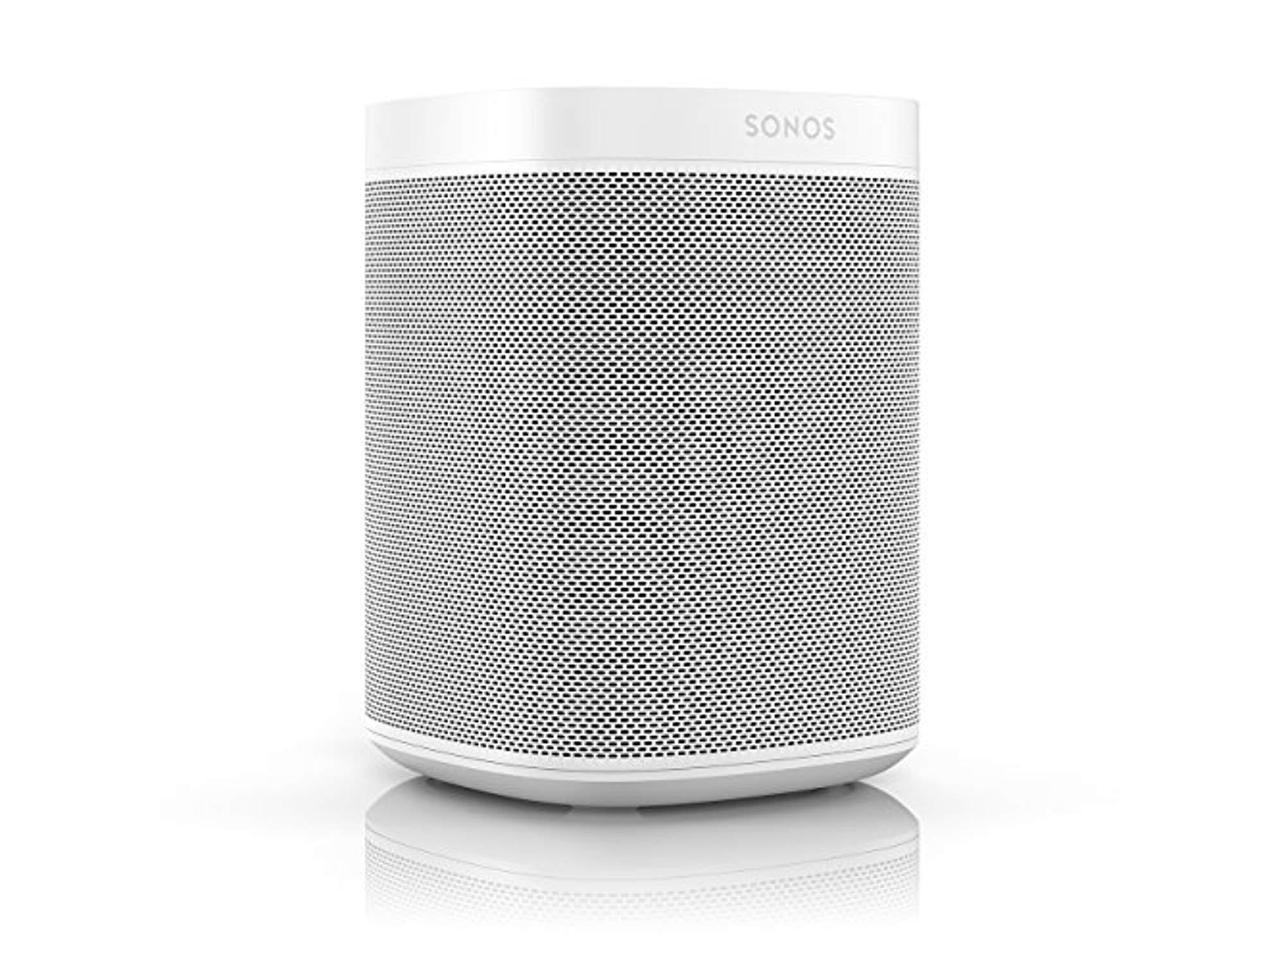 Wireless home audio has evolved in the past few years, offering peerless convenience and fidelity through slick speakers like the Sonos One.